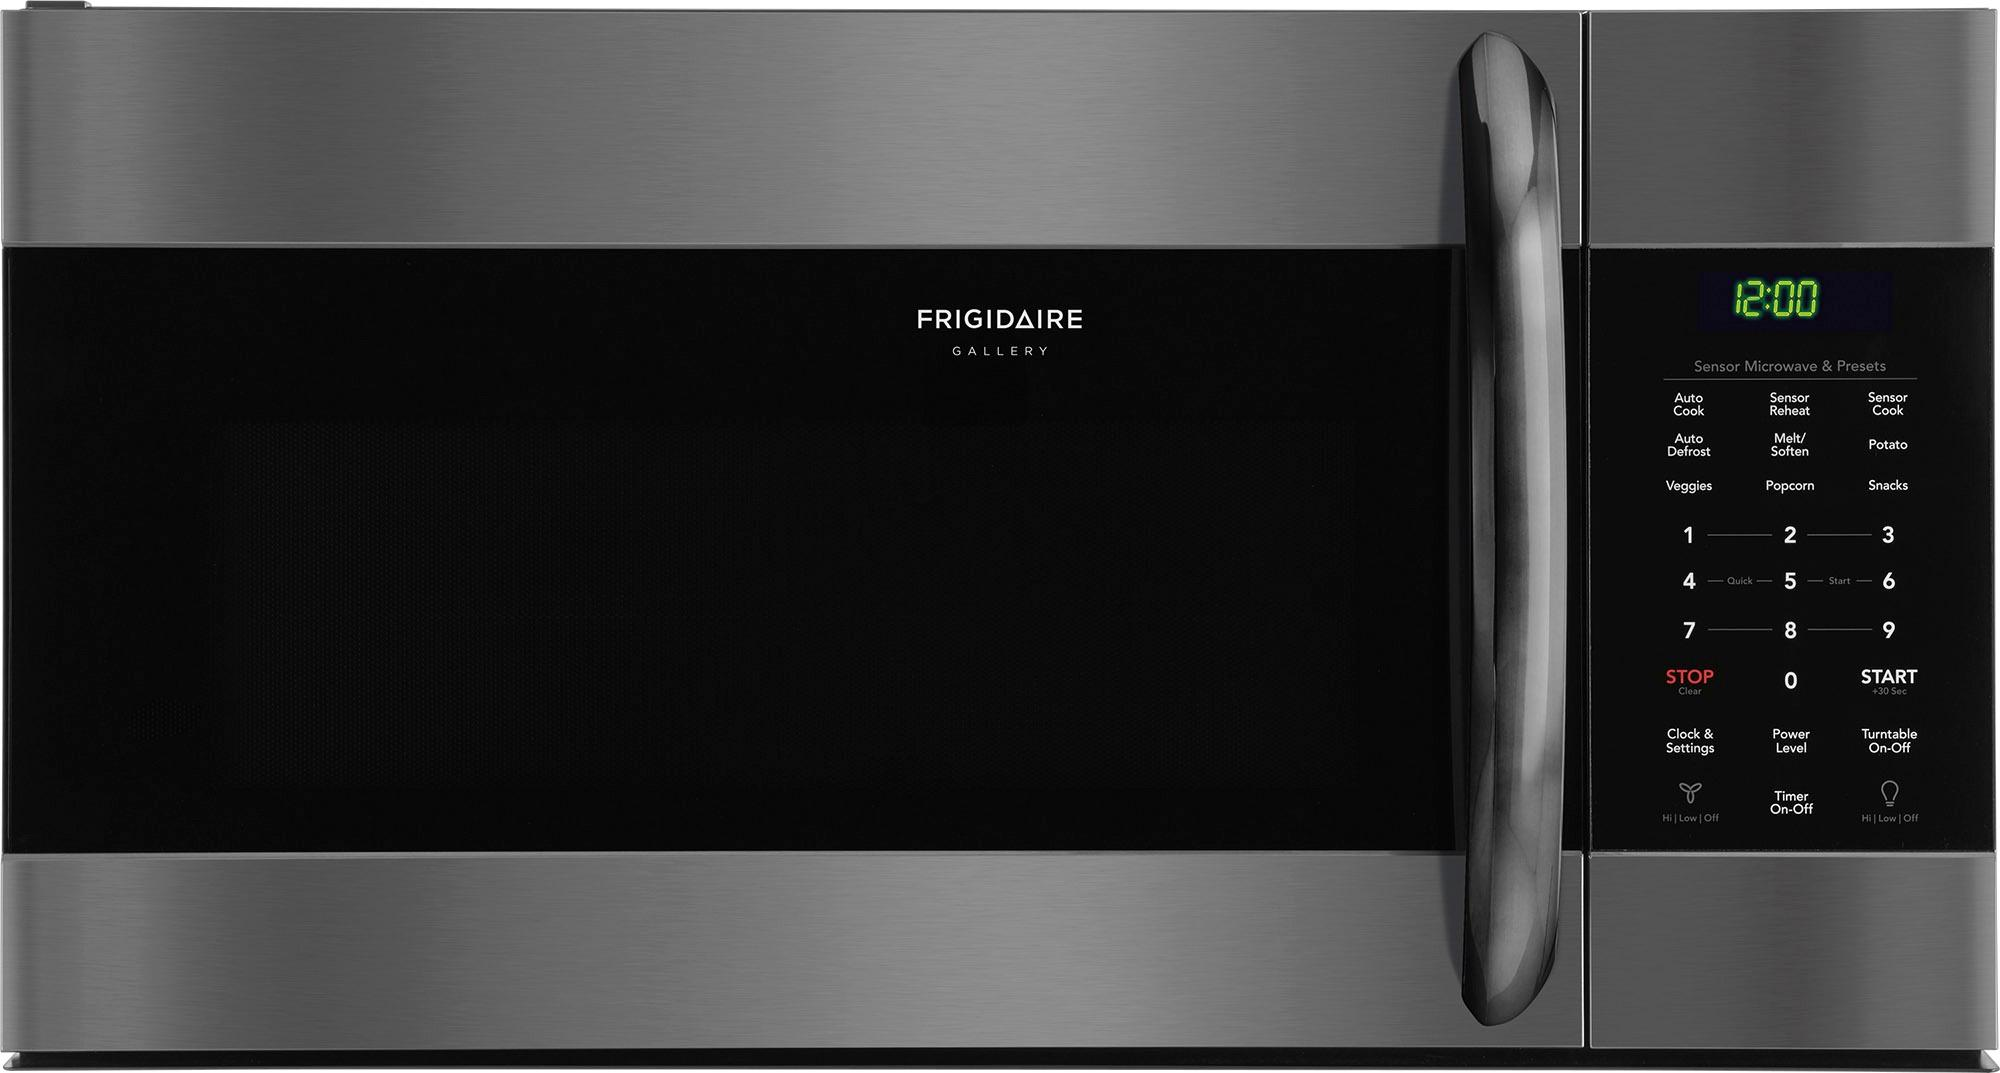 frigidaire gallery 1 7 cu ft over the range microwave with sensor cooking black stainless steel